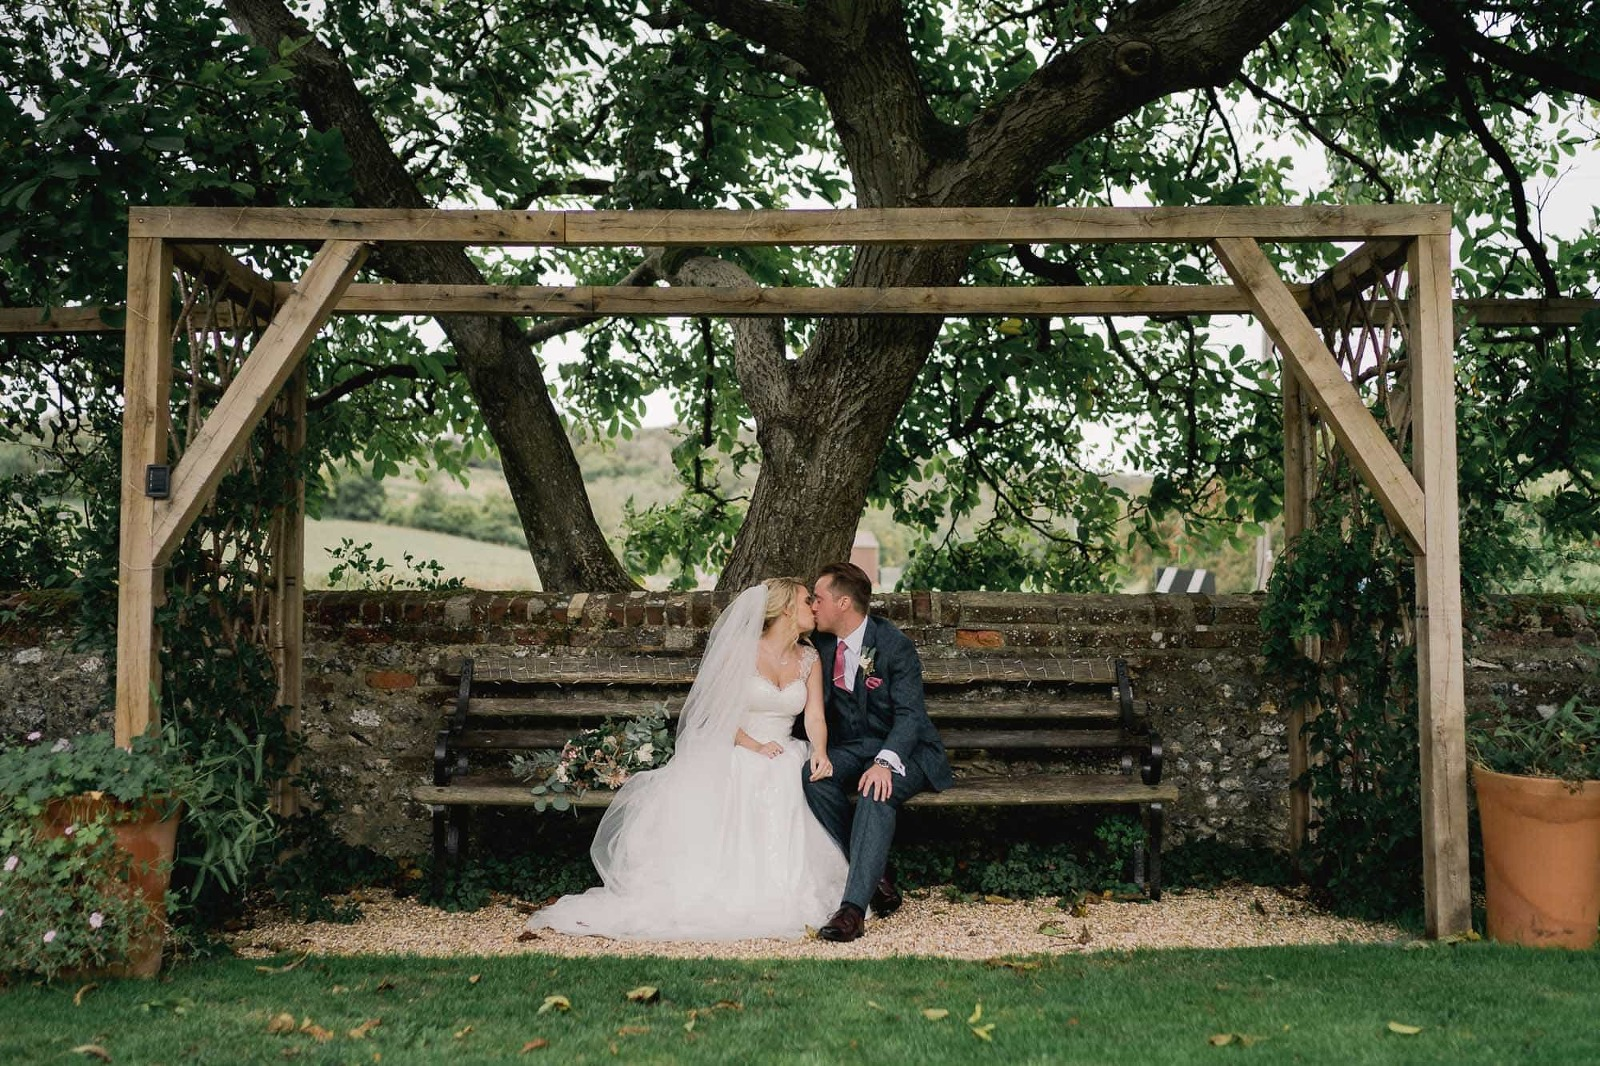 Upwaltham Barns Wedding Venue in Sussex